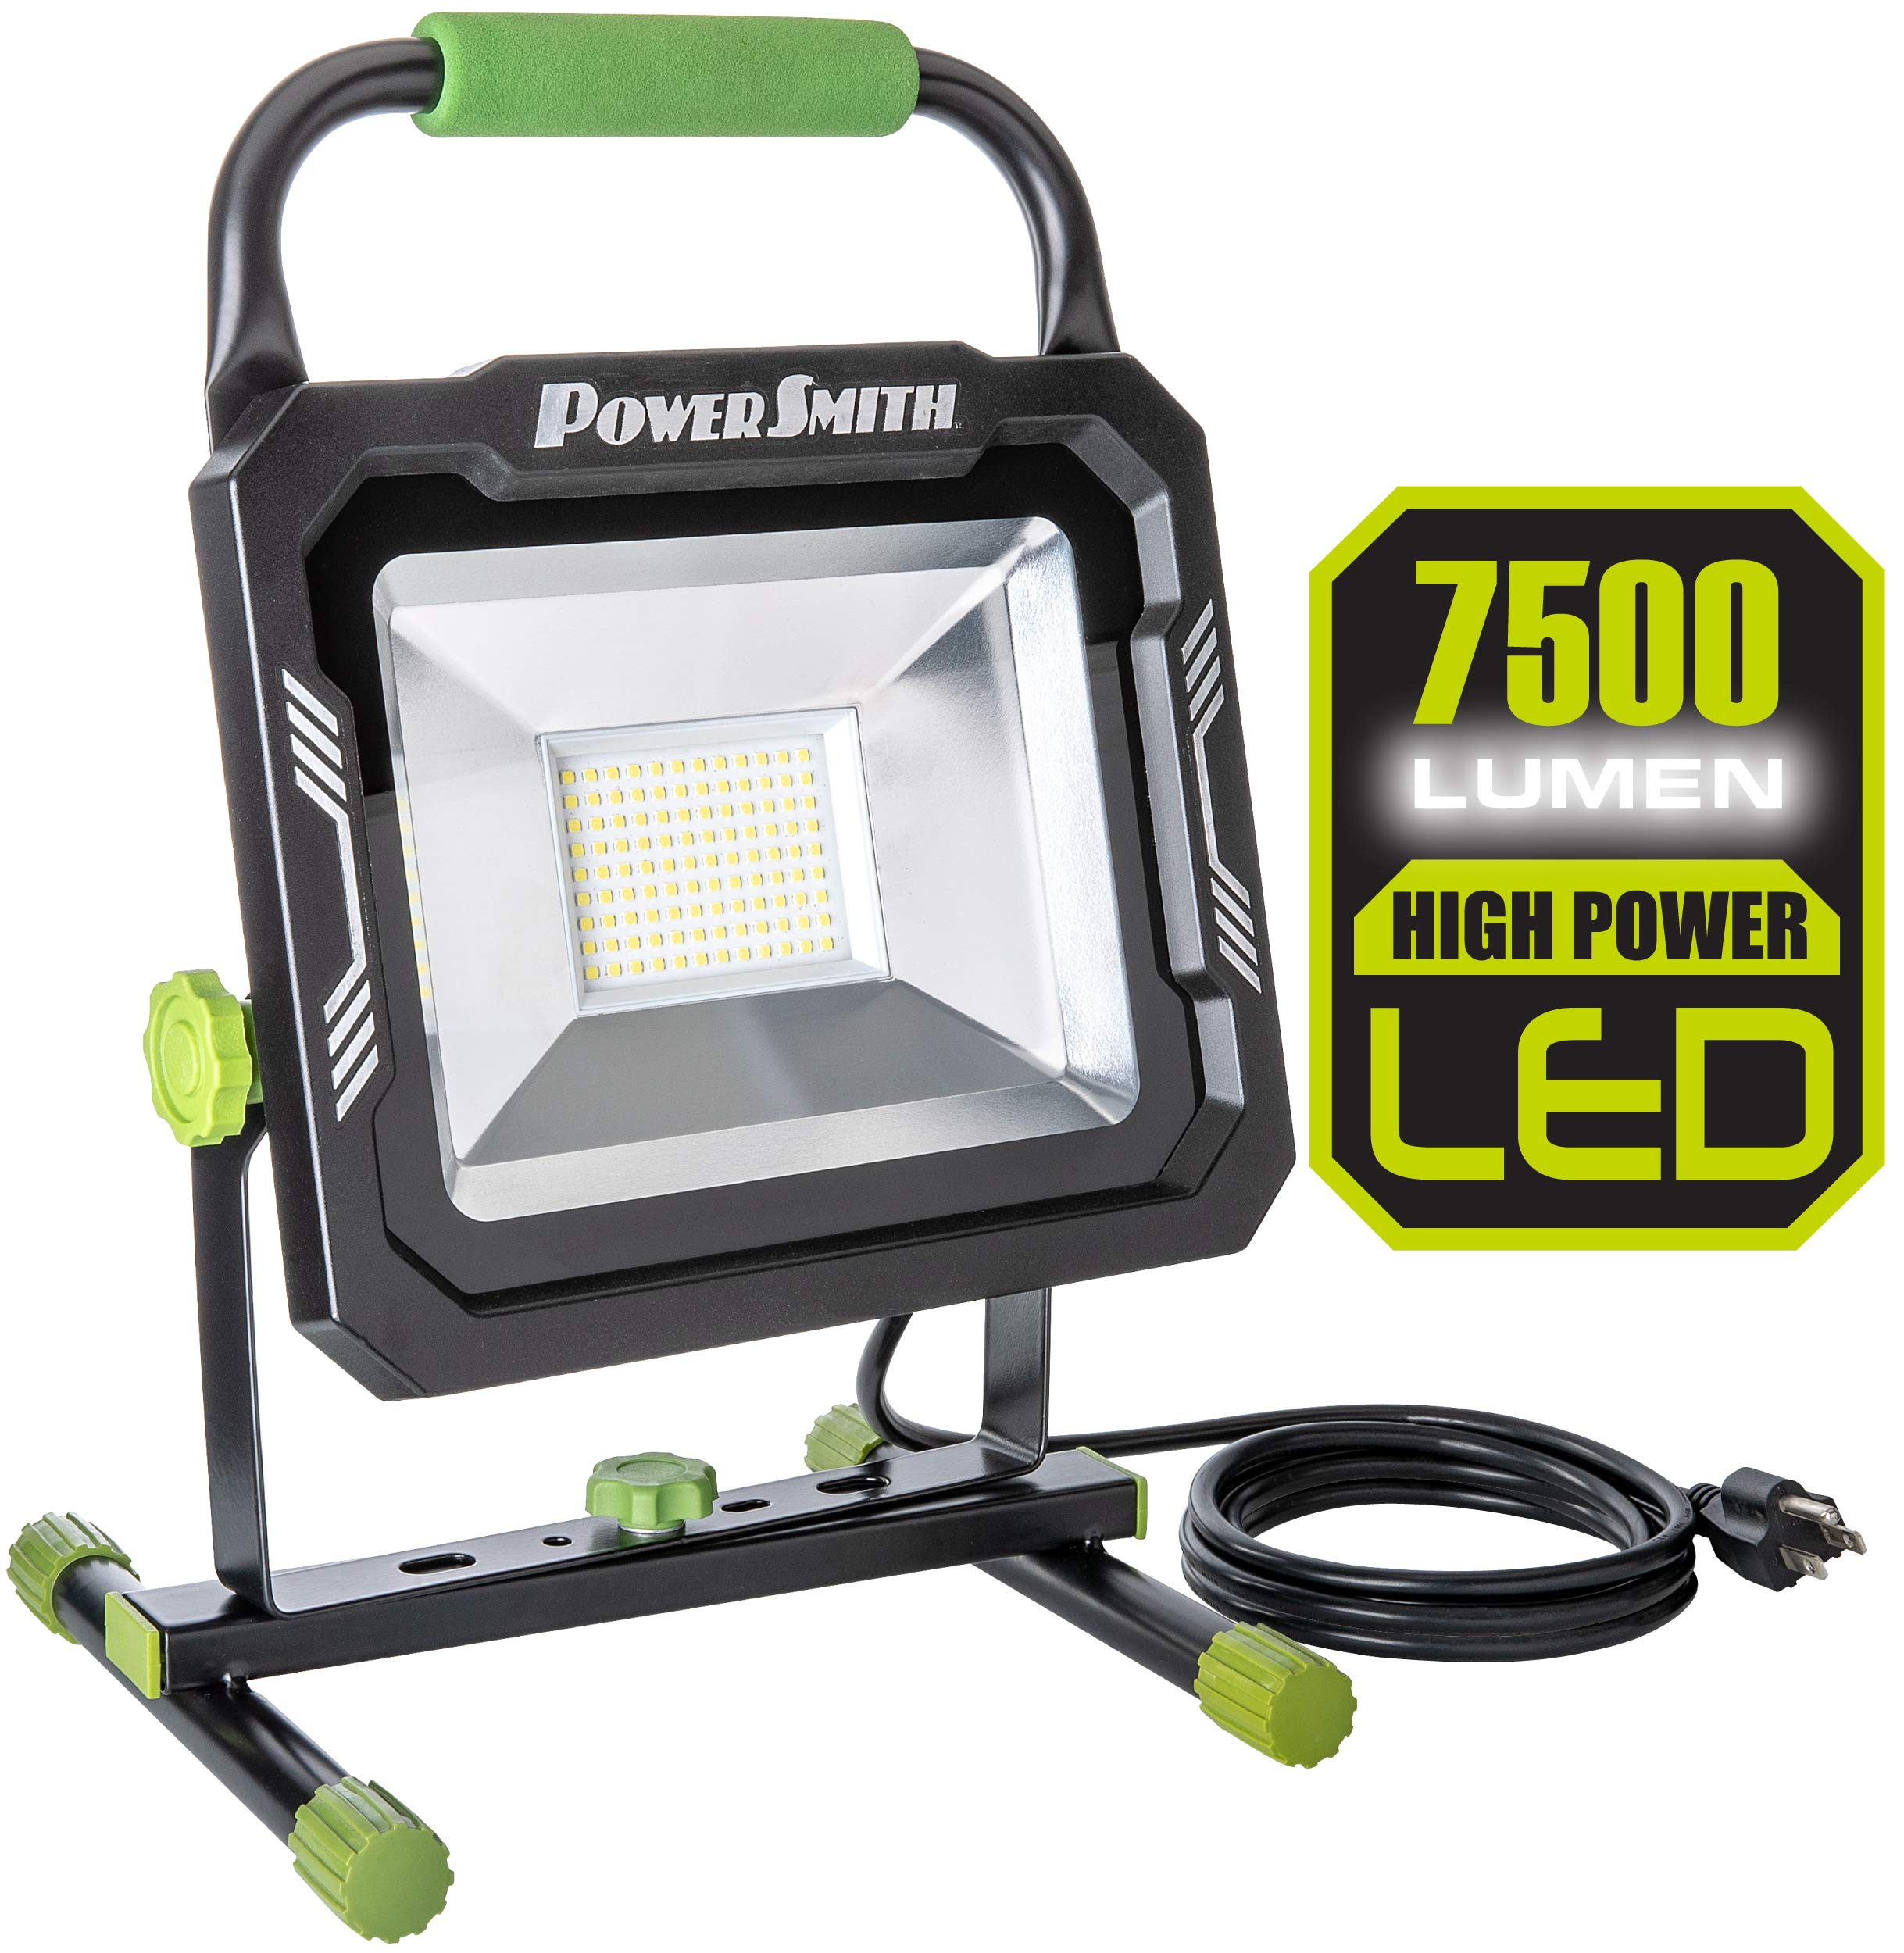 PowerSmith PWL175S 7,500 Lumen LED PRO-Grade work light with Adjustable Metal Stand and 10ft Power Cord, Black & Green